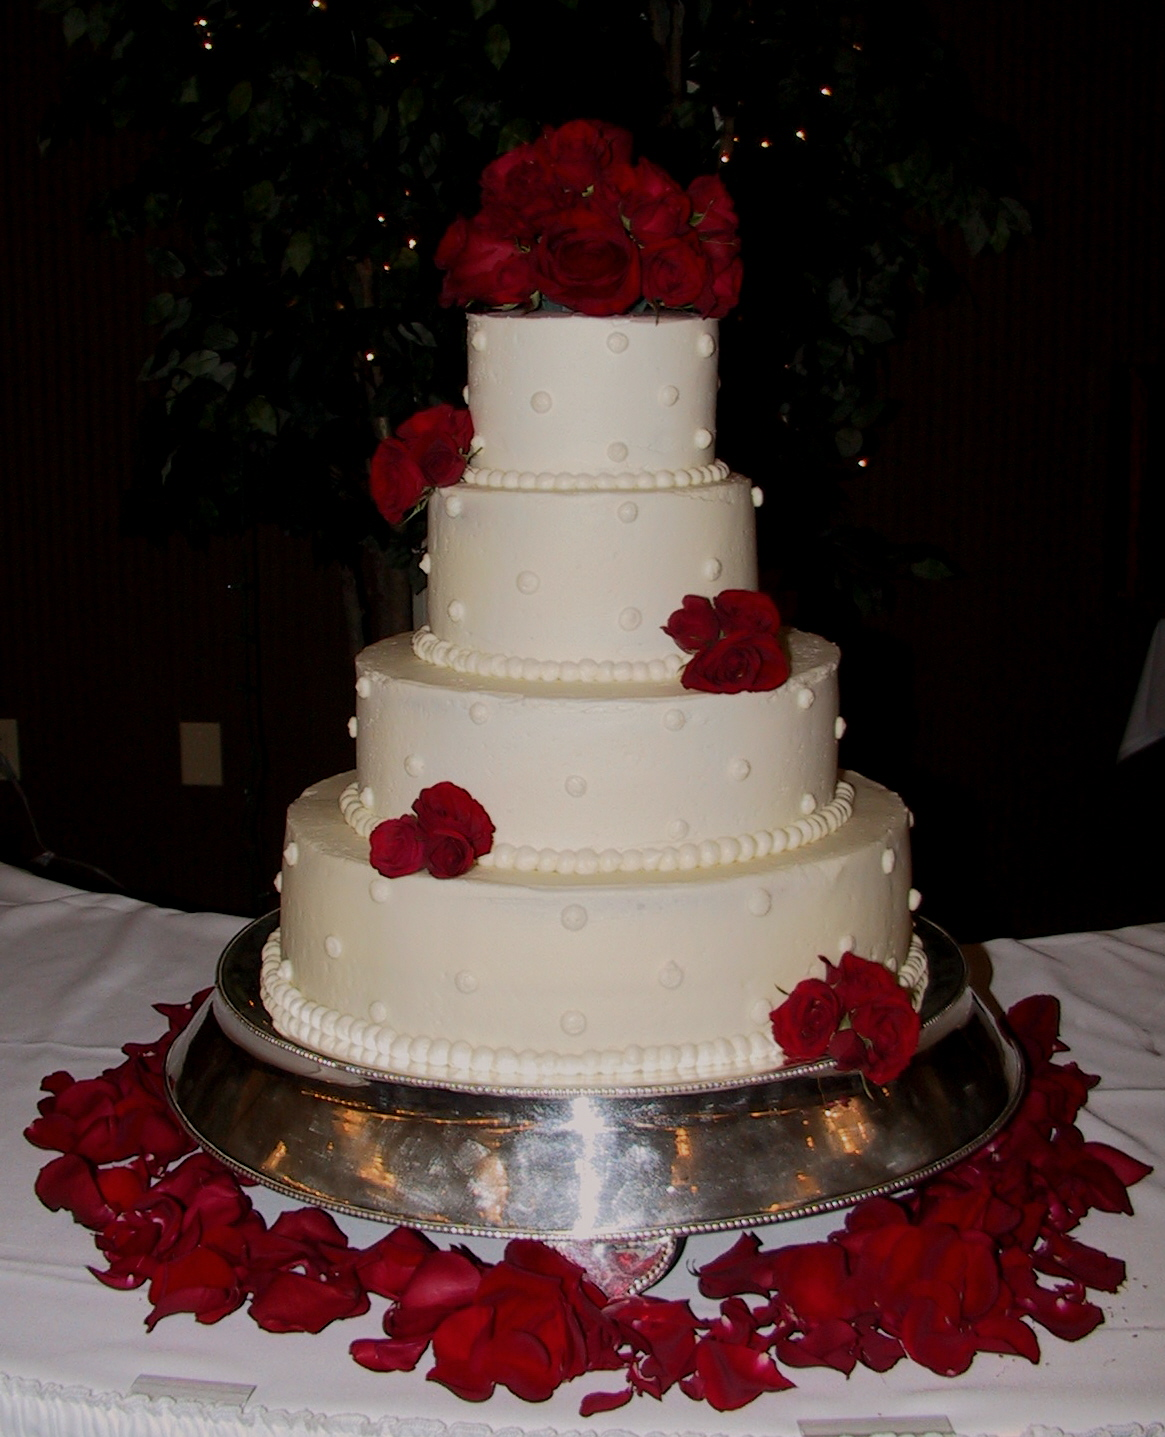 10 Small Red And White Square Wedding Cakes Photo Wedding Cake